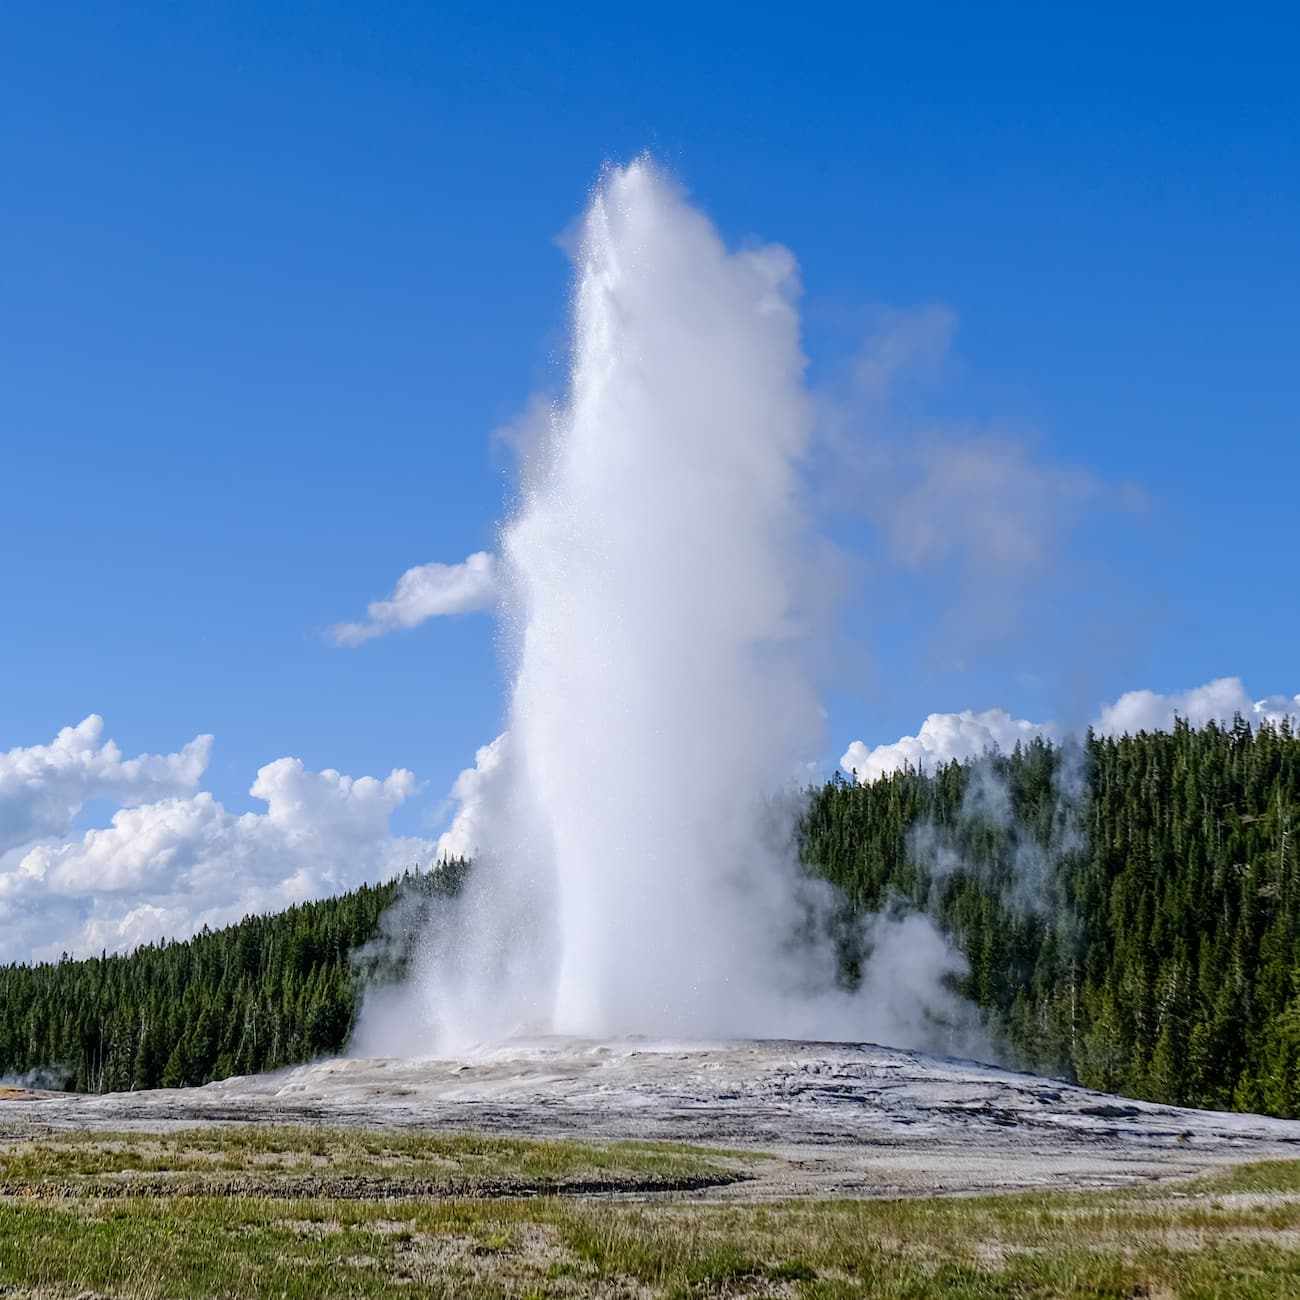 Jets of water and steam erupt into the air from a geyser against a forested backdrop